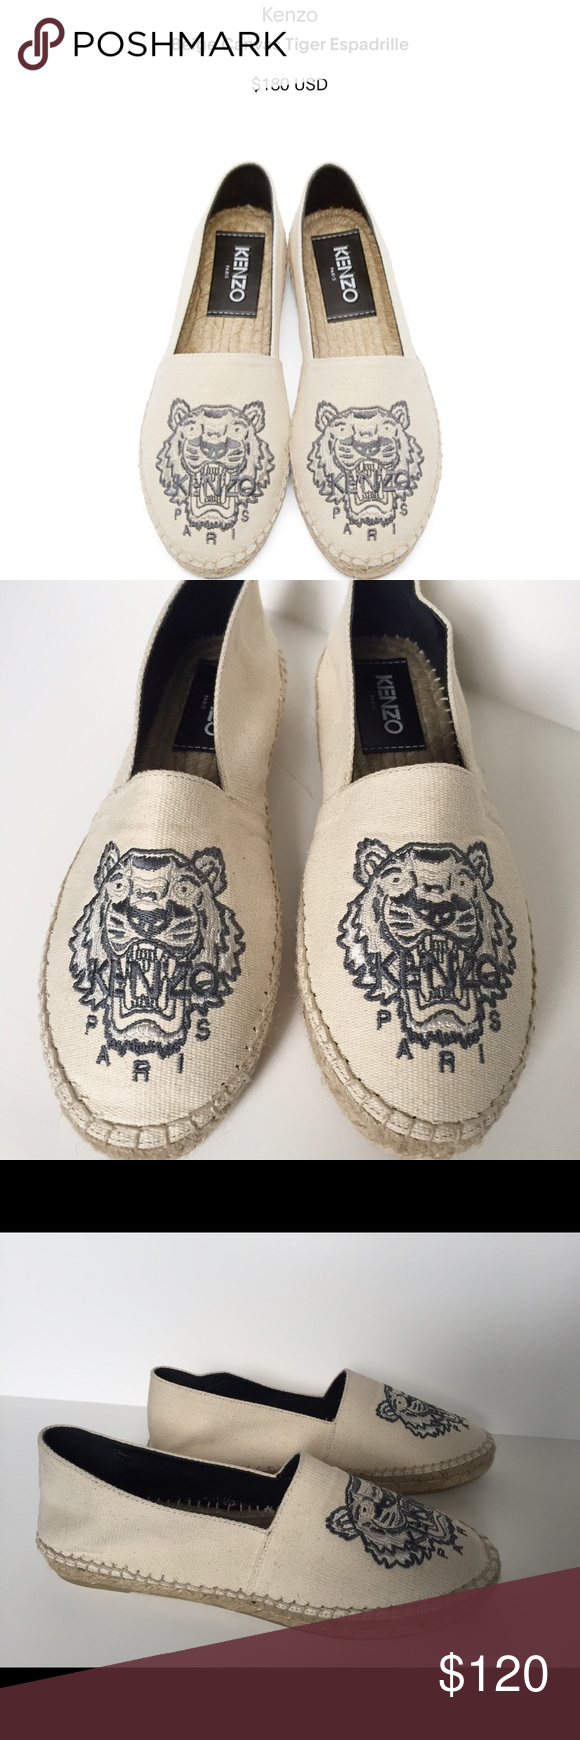 KENZO women's espadrille loafer shoes tiger 37 6.5 Kenzo